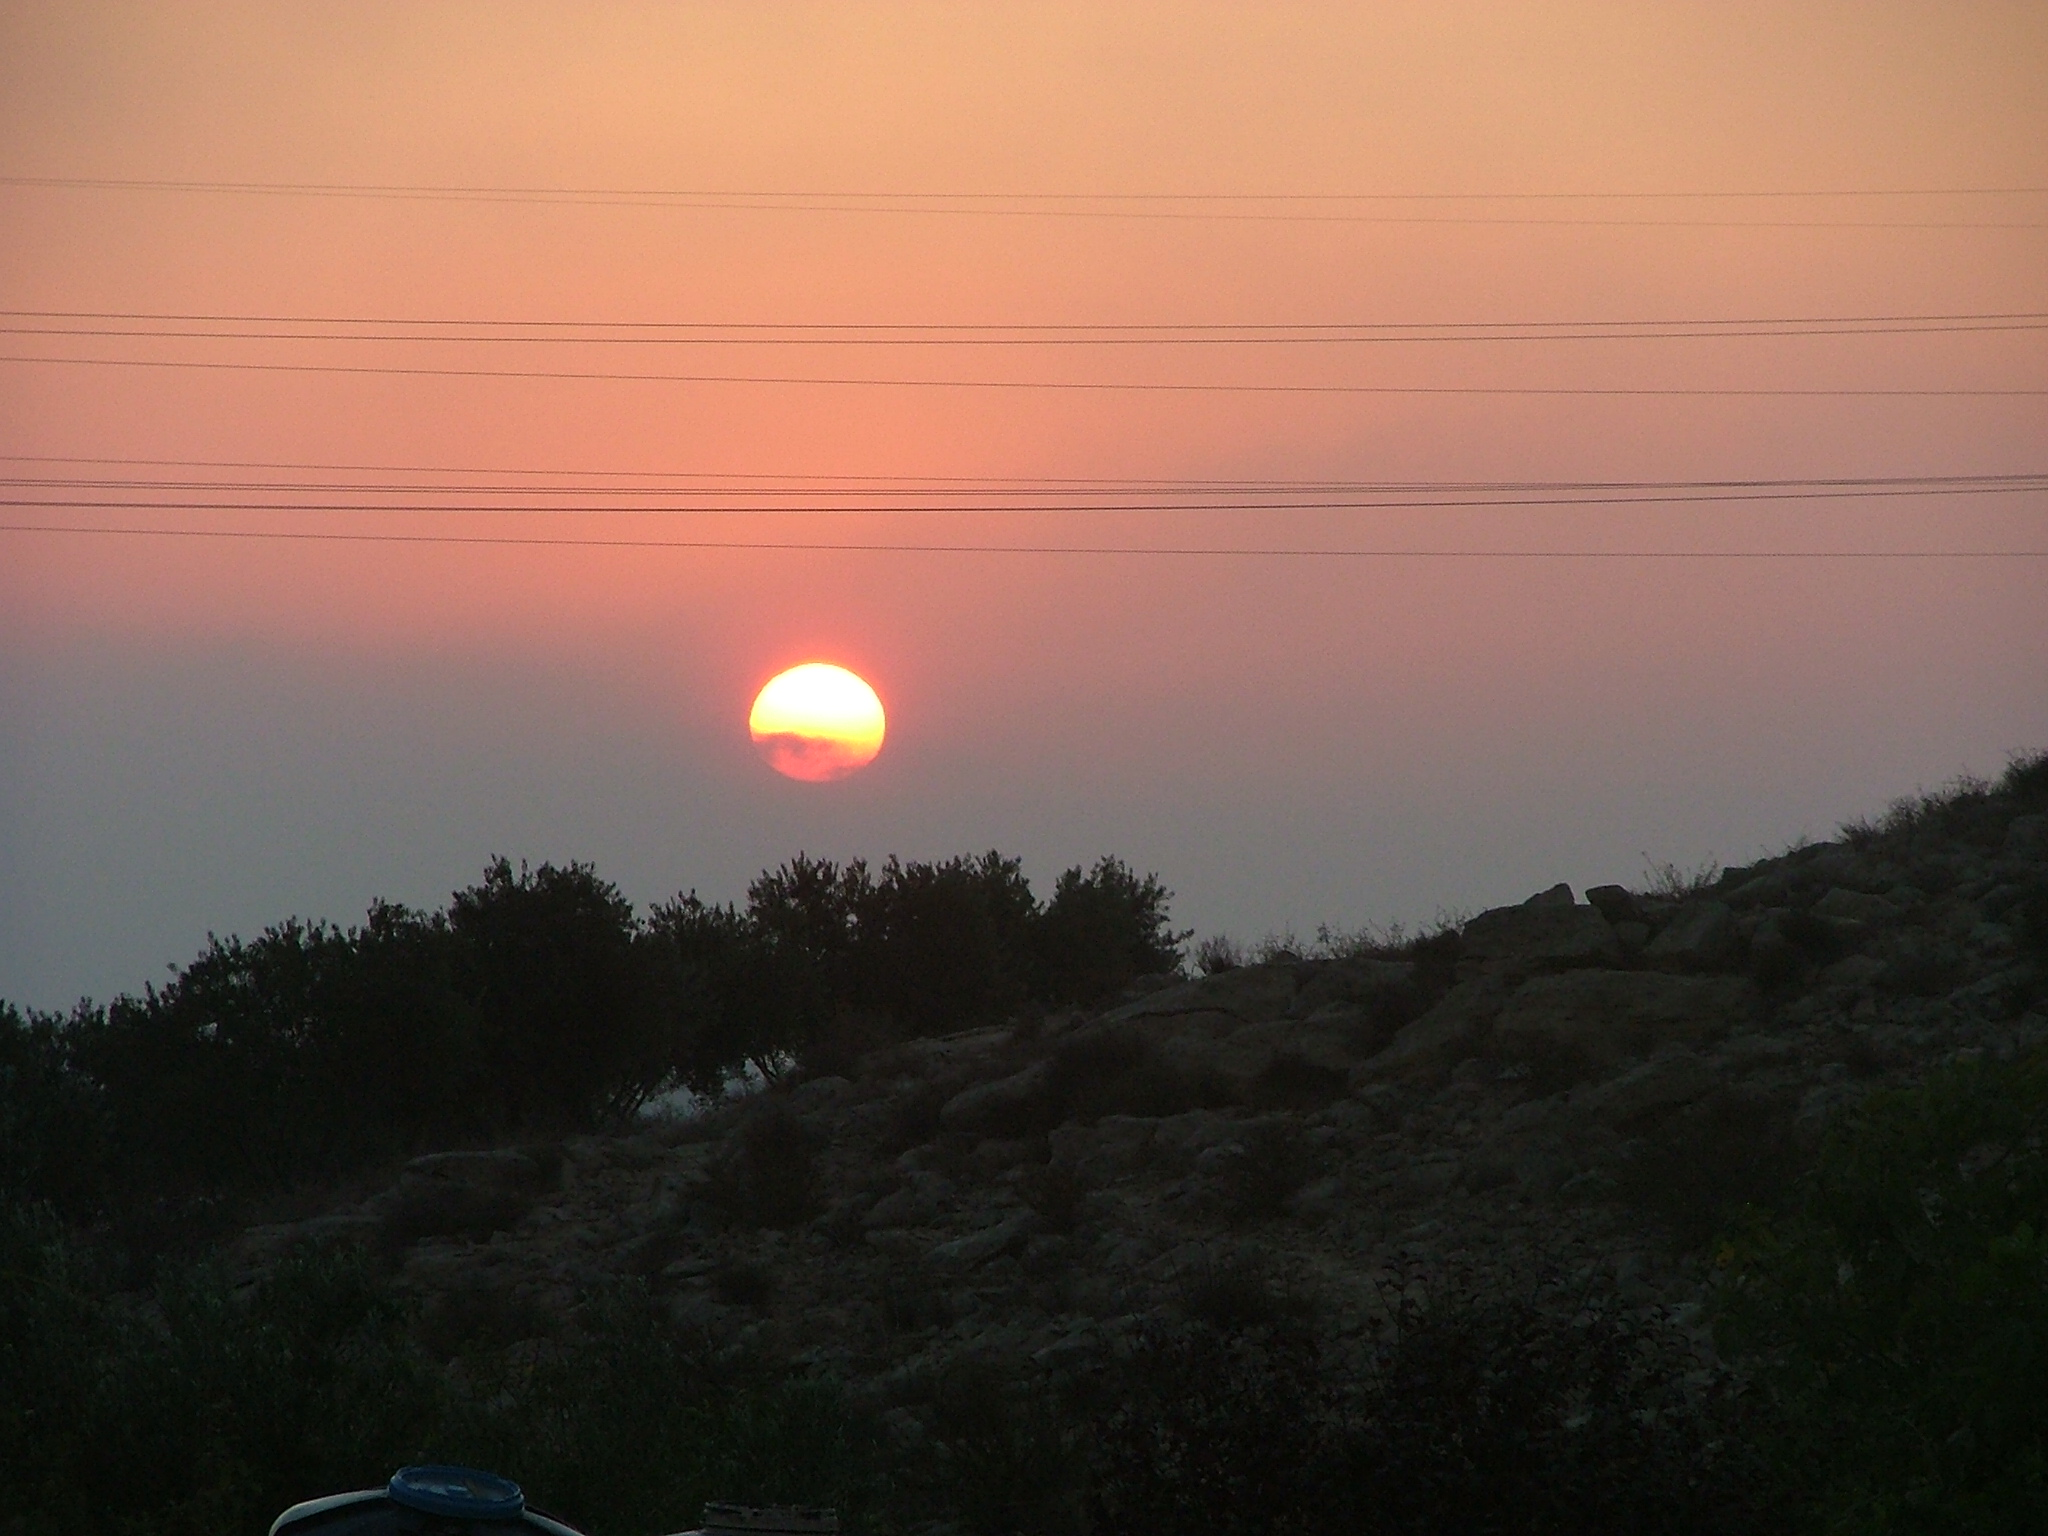 Sunrise at Carmey Avdat Desert Estat